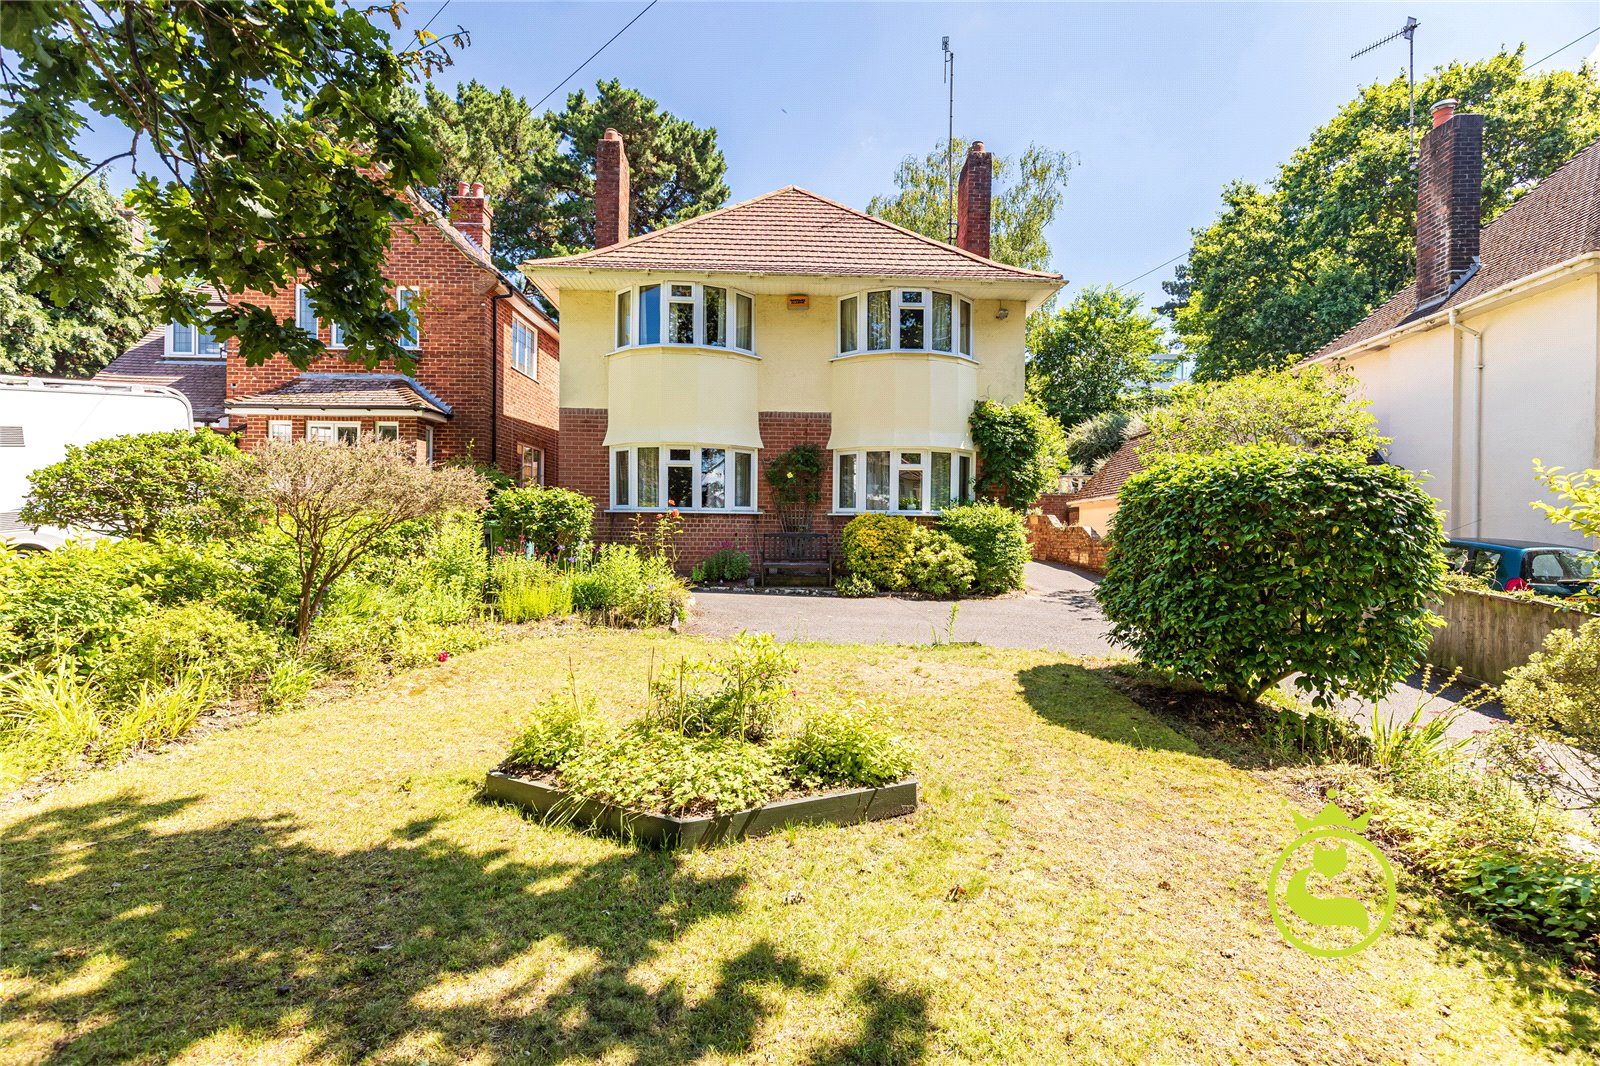 3 bed house for sale in Hatherden Avenue, Lower Parkstone, BH14